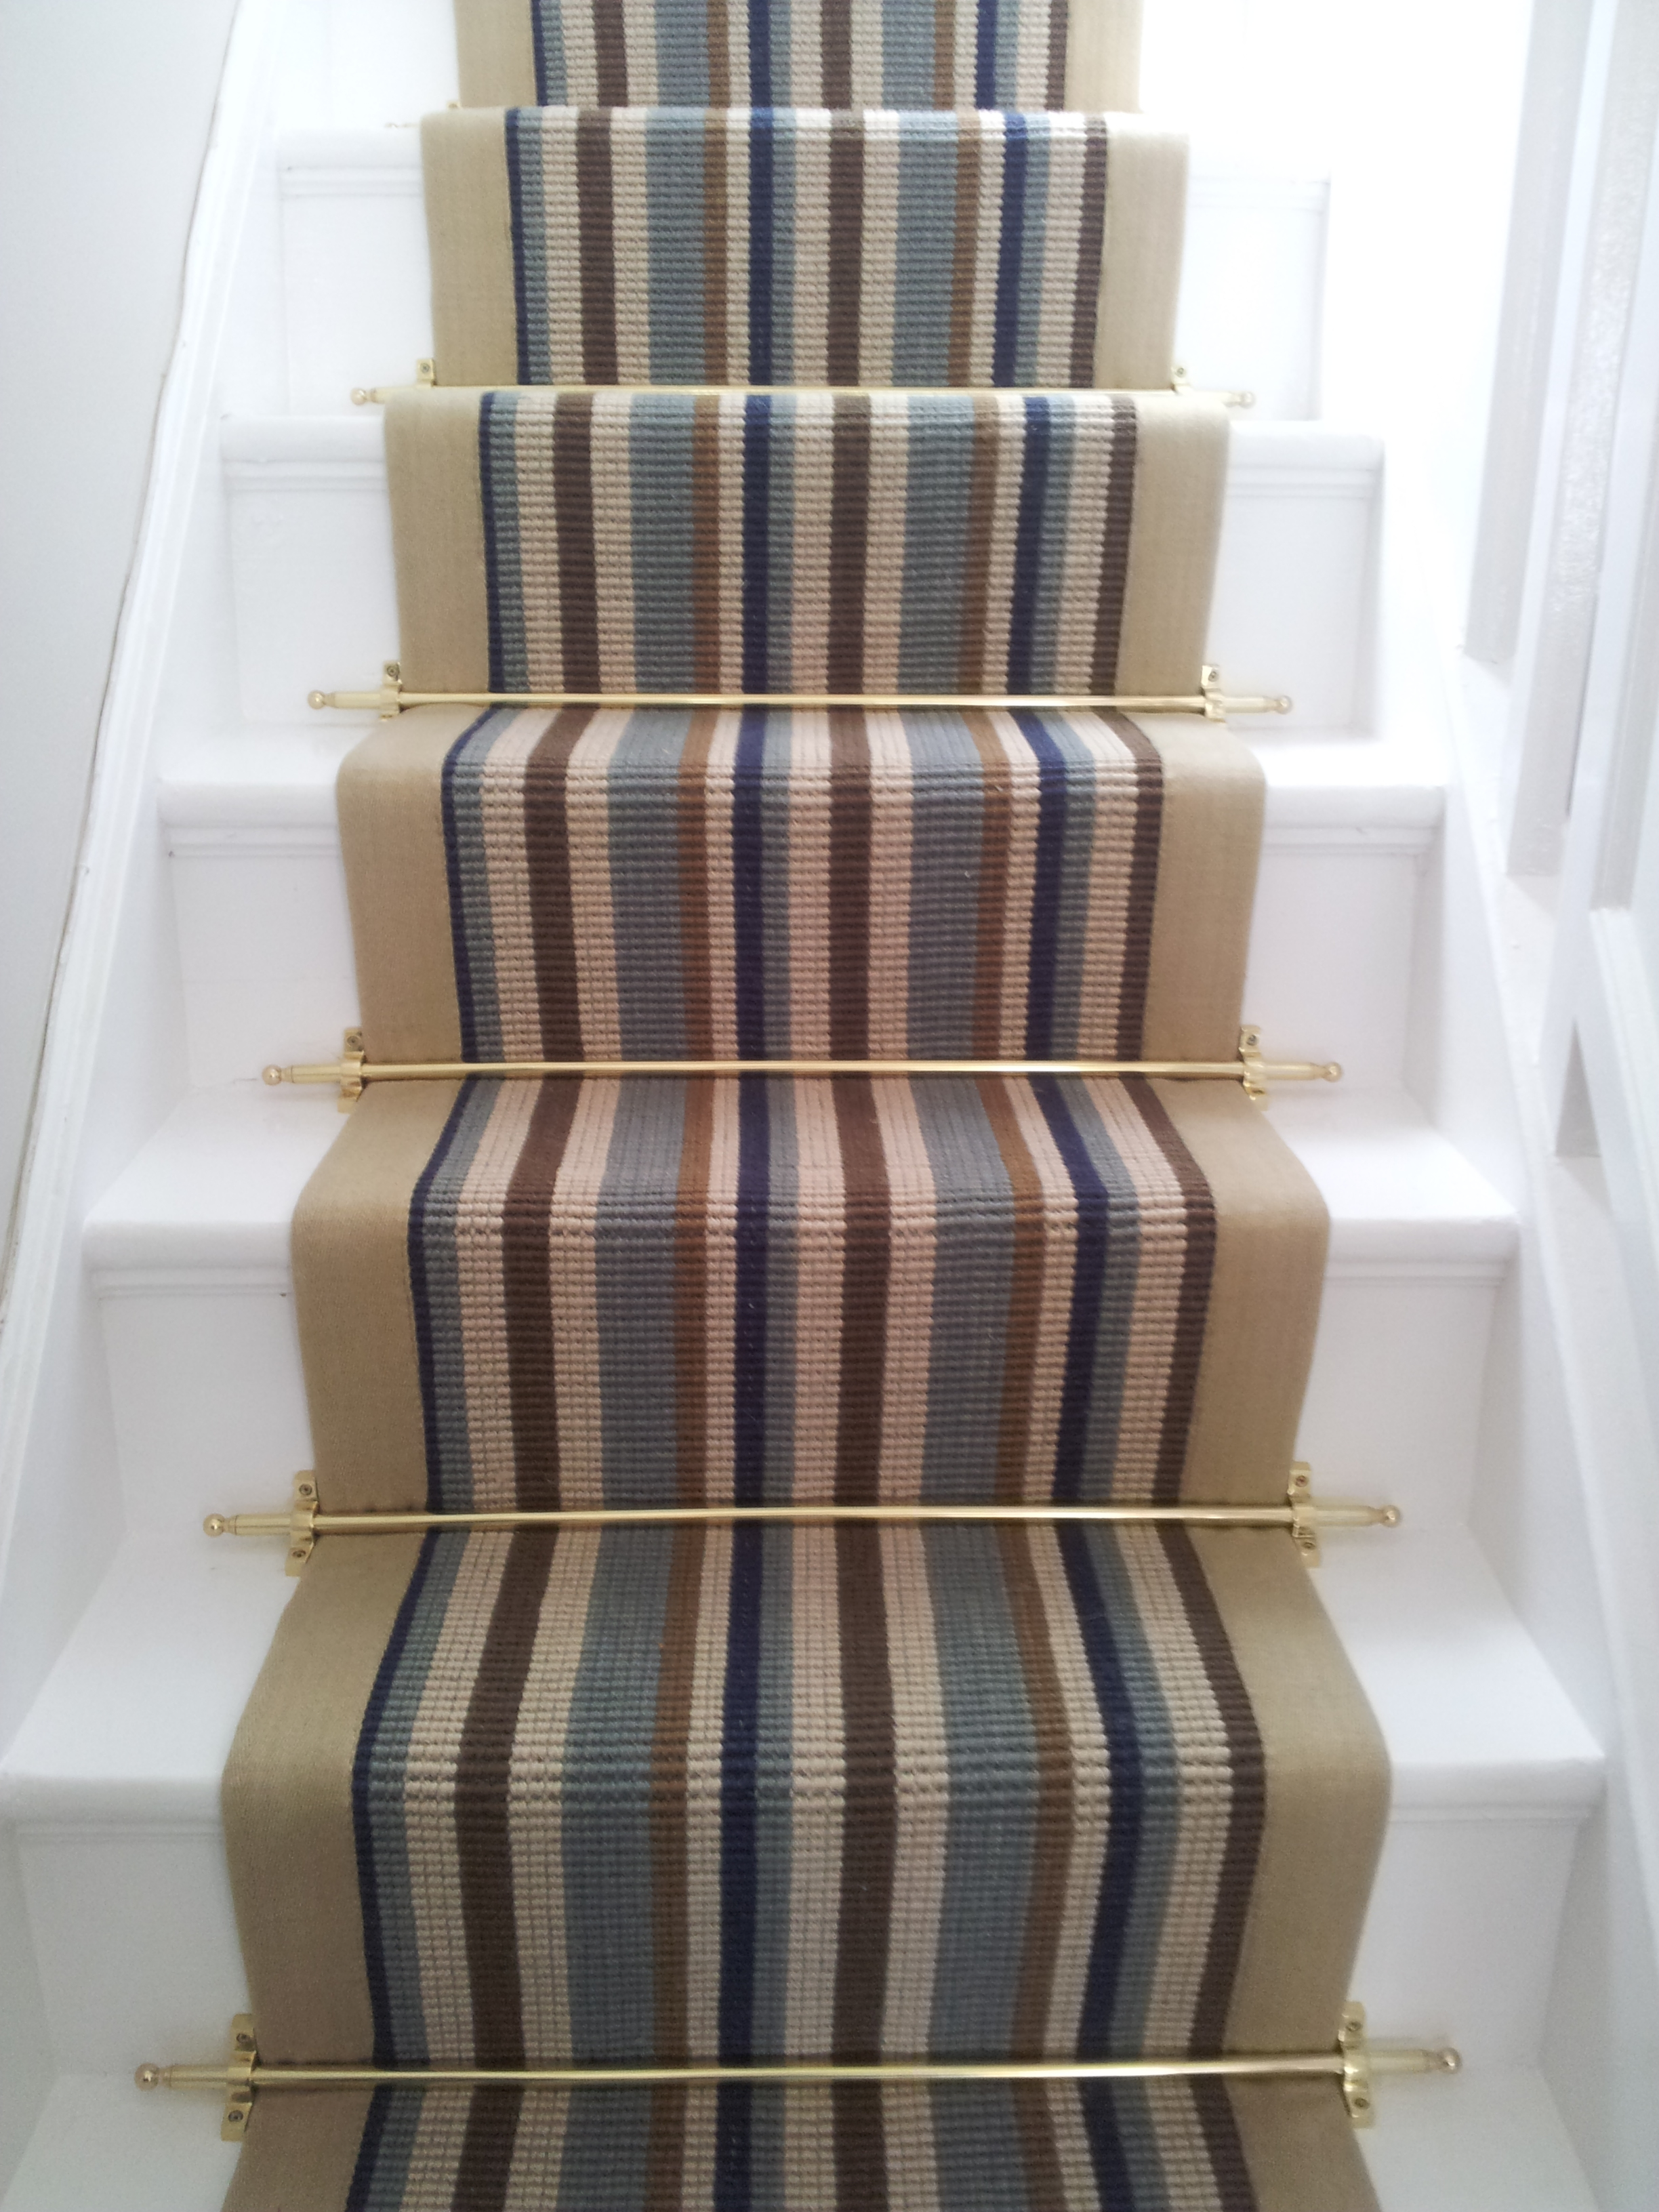 Stair Carpets With Rods Meze Blog Regarding Rug Runners For Stairs (#16 of 20)